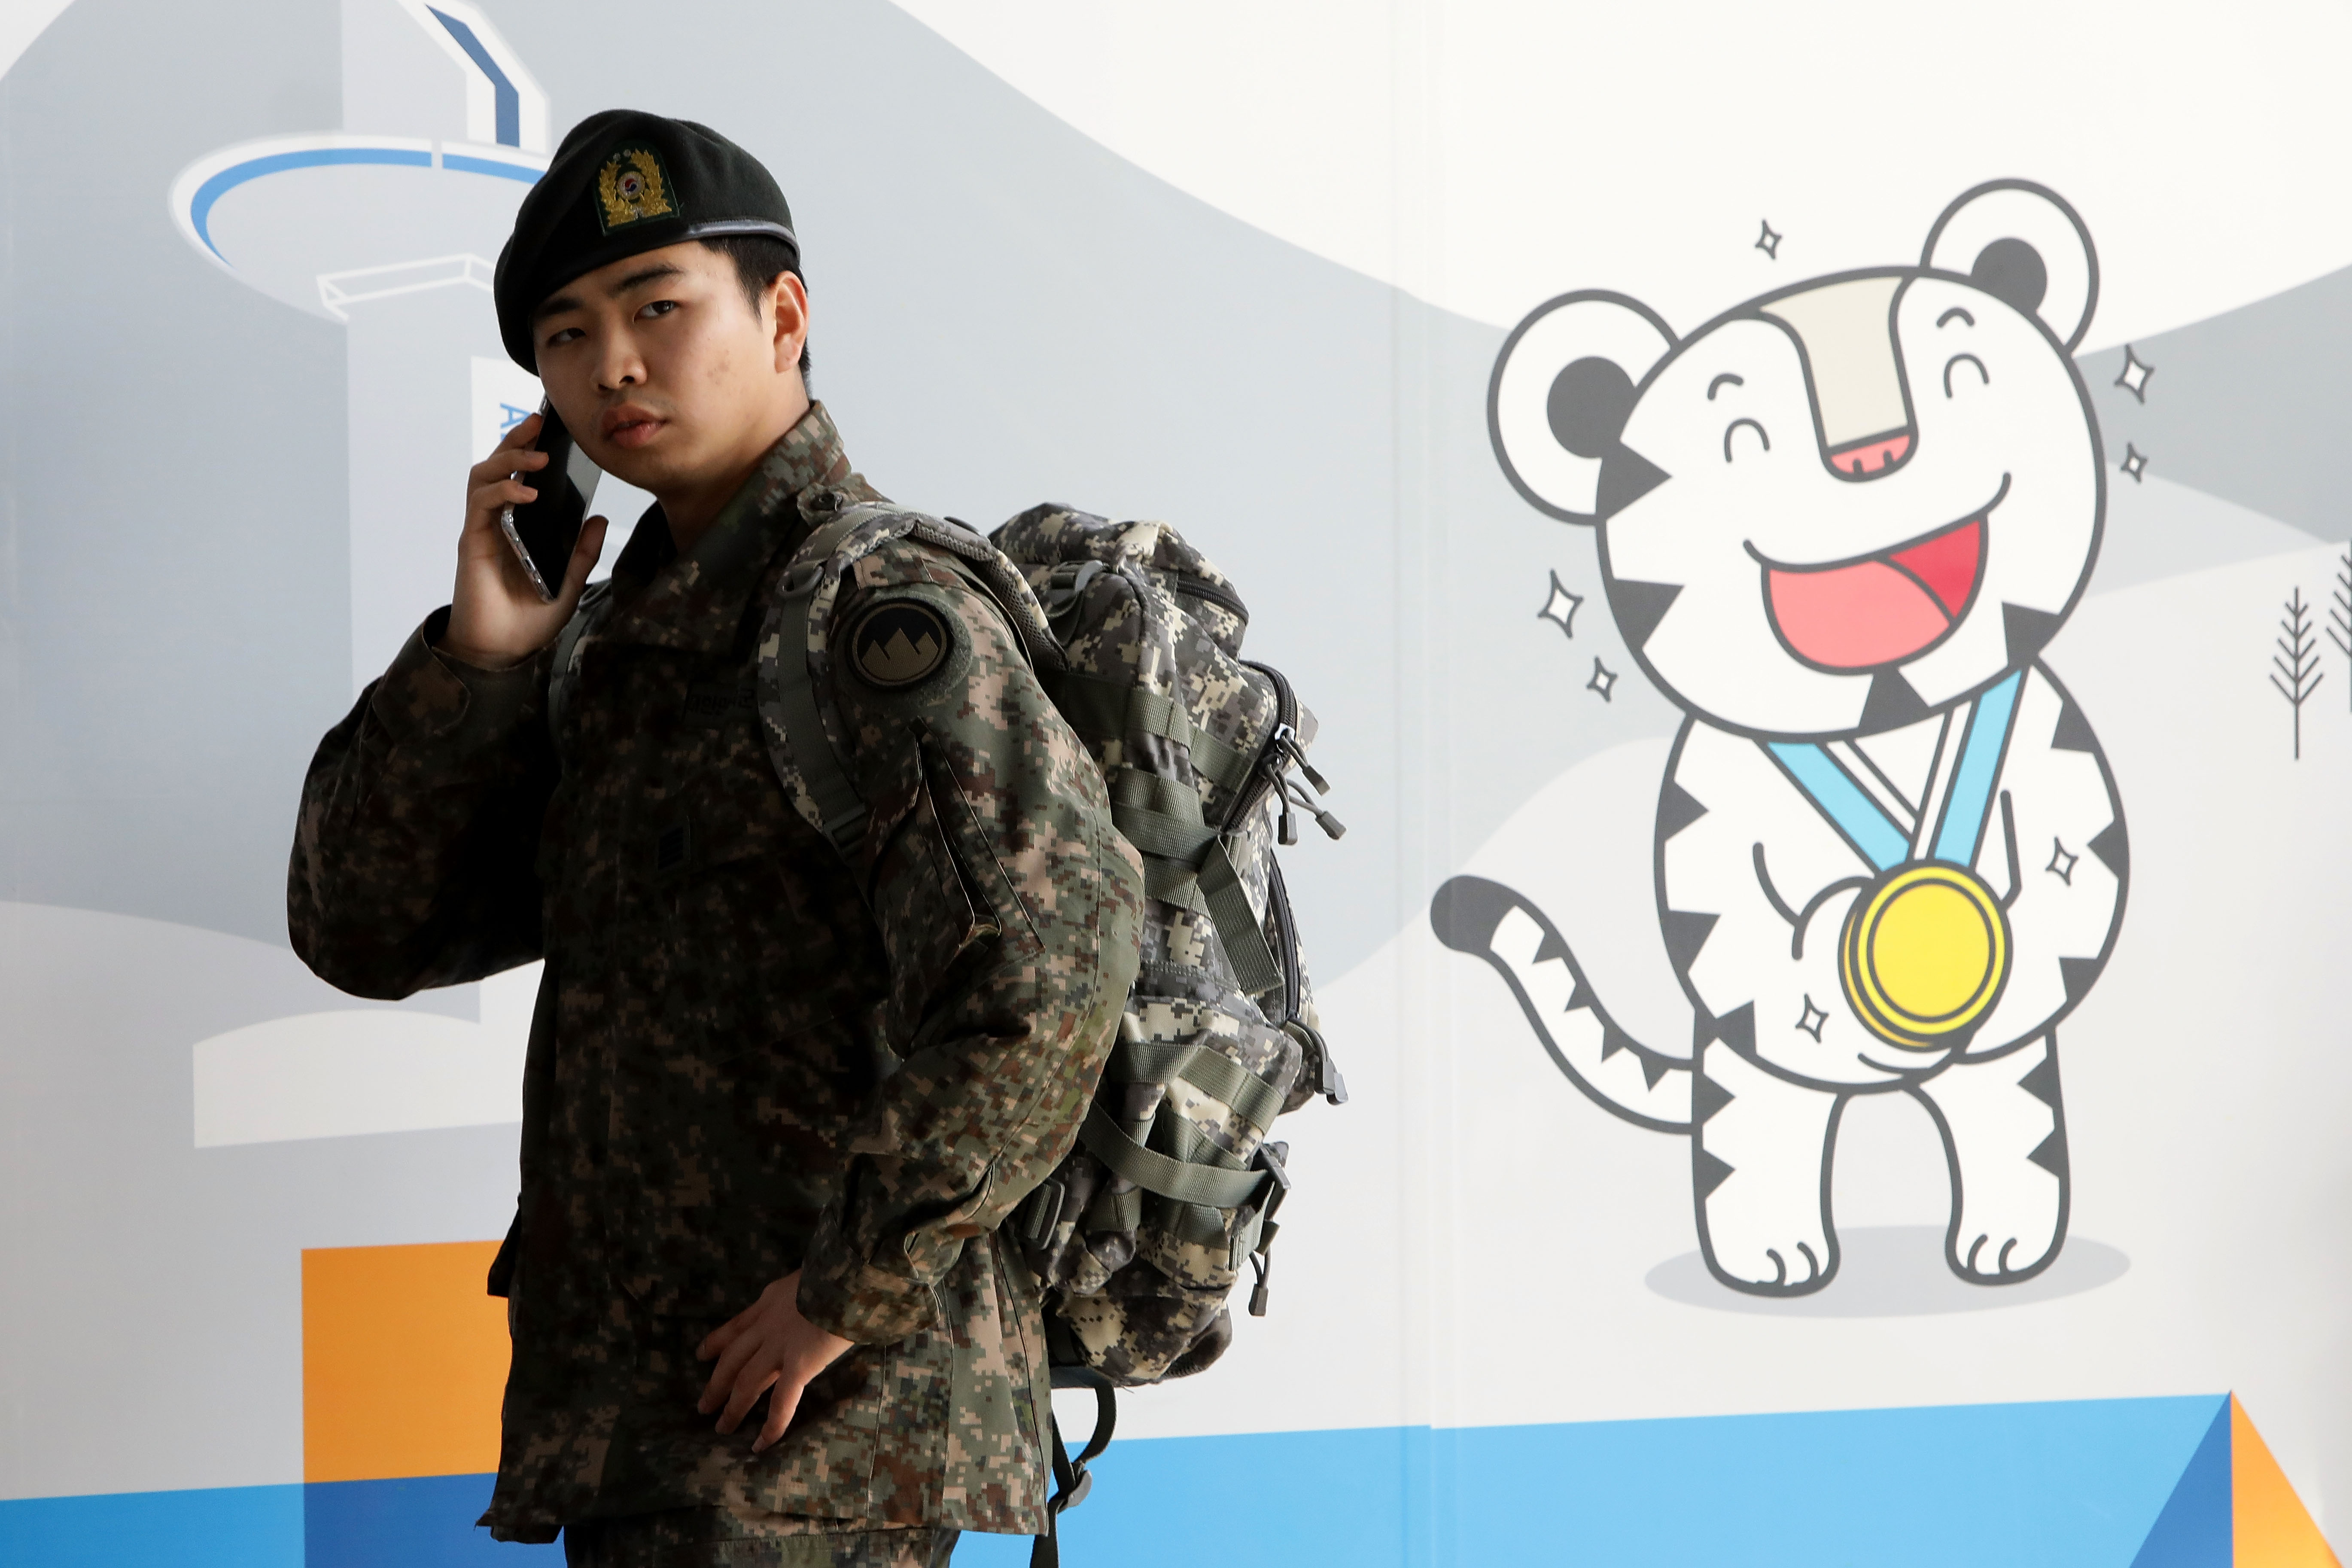 A South Korean soldier at a 2018 PyeongChang Winter Olympics booth in Seoul, South Korea on Jan. 5, 2018